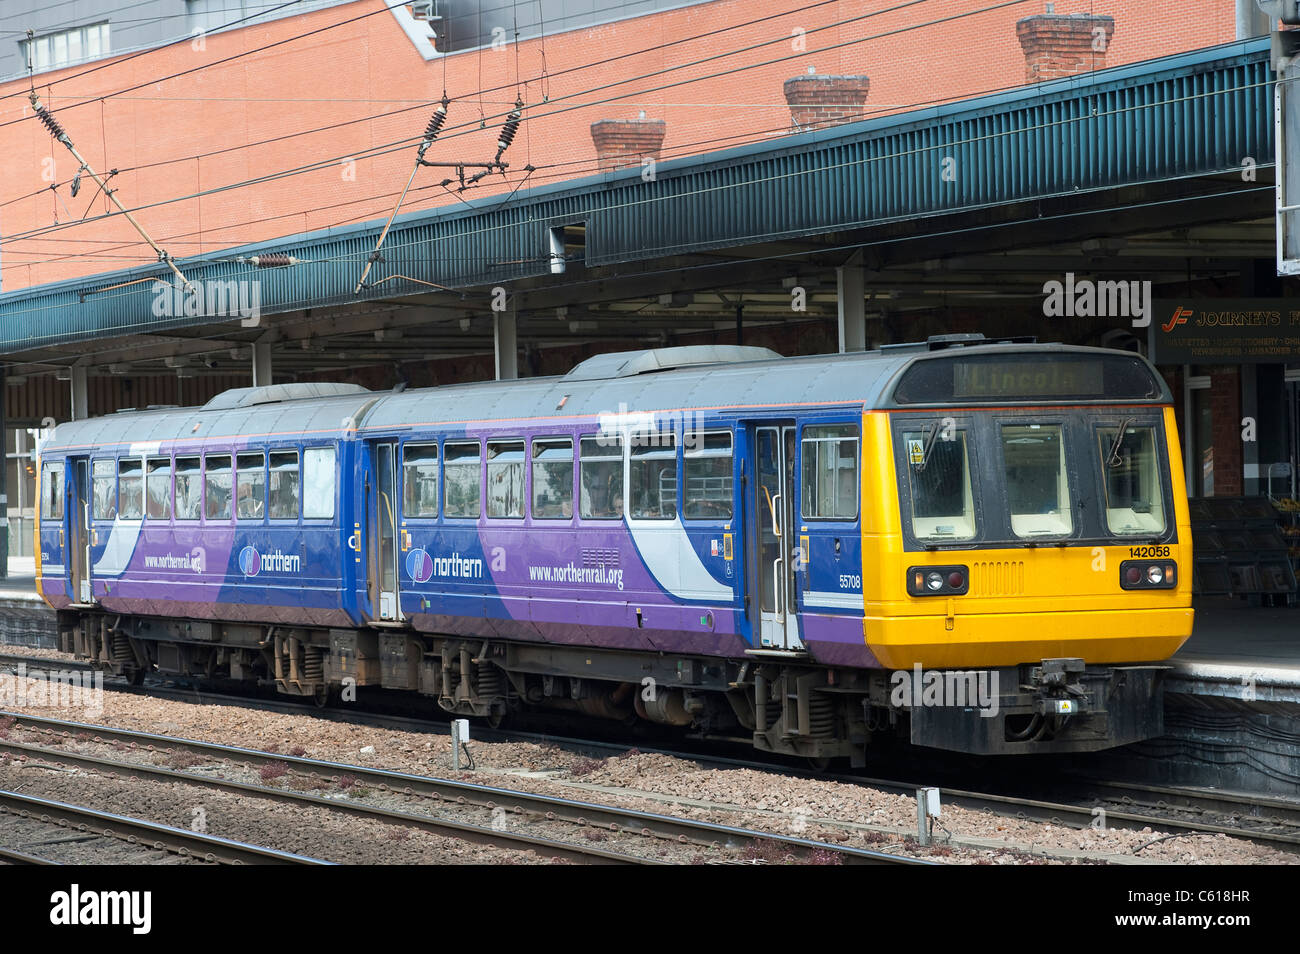 Class 142 train in Northern Rail livery waiting at a railway station in England. - Stock Image